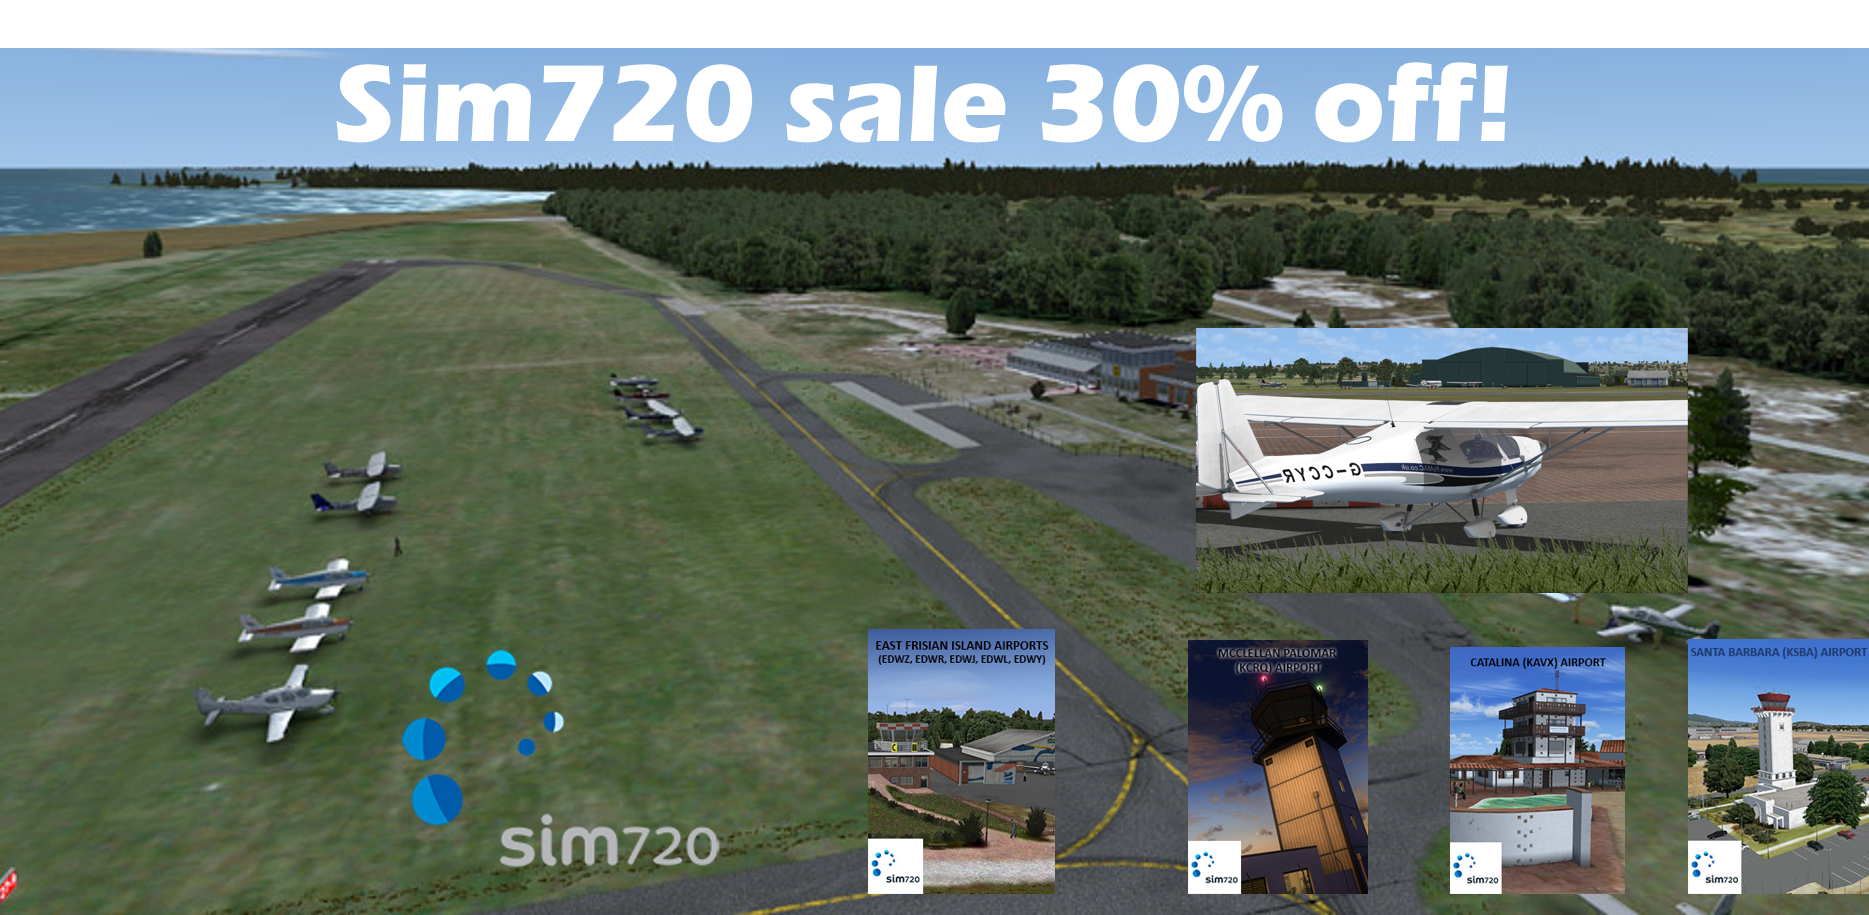 Sim 720 Holiday sale 30% off!